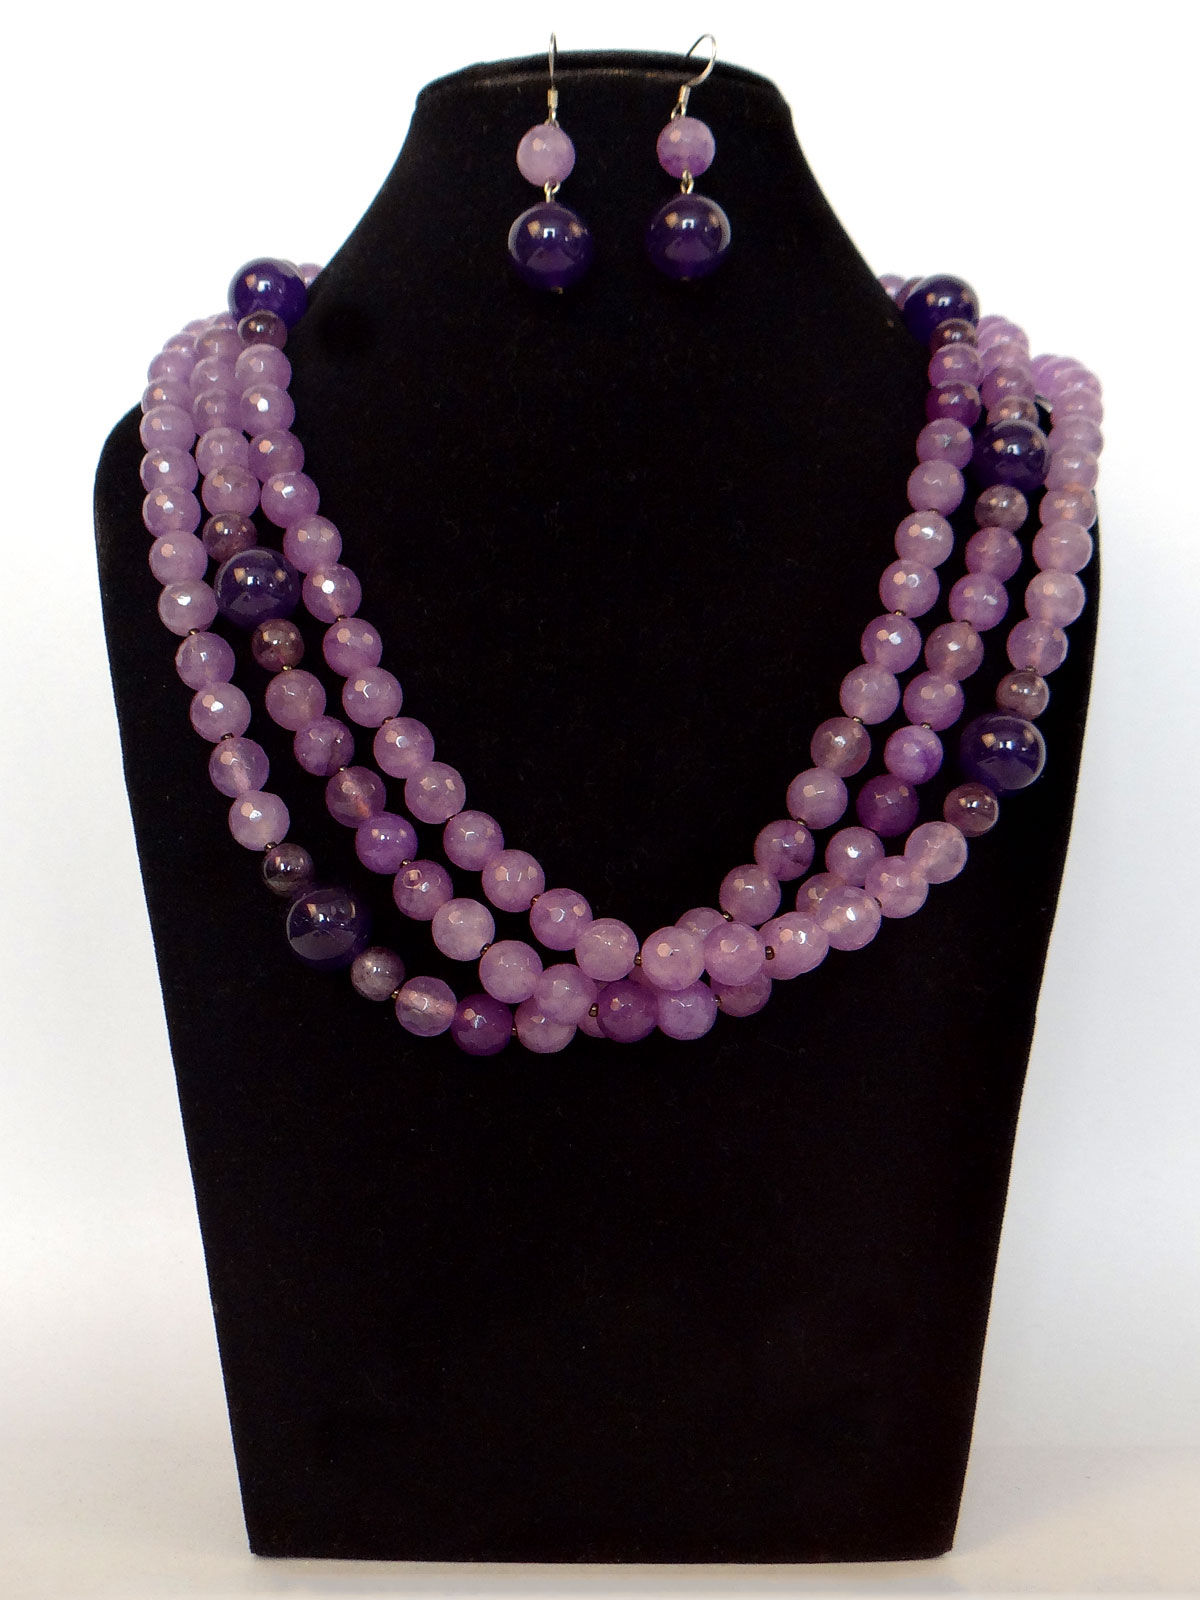 Alankriti grey agate with oval amethyst beads necklace with earrings set